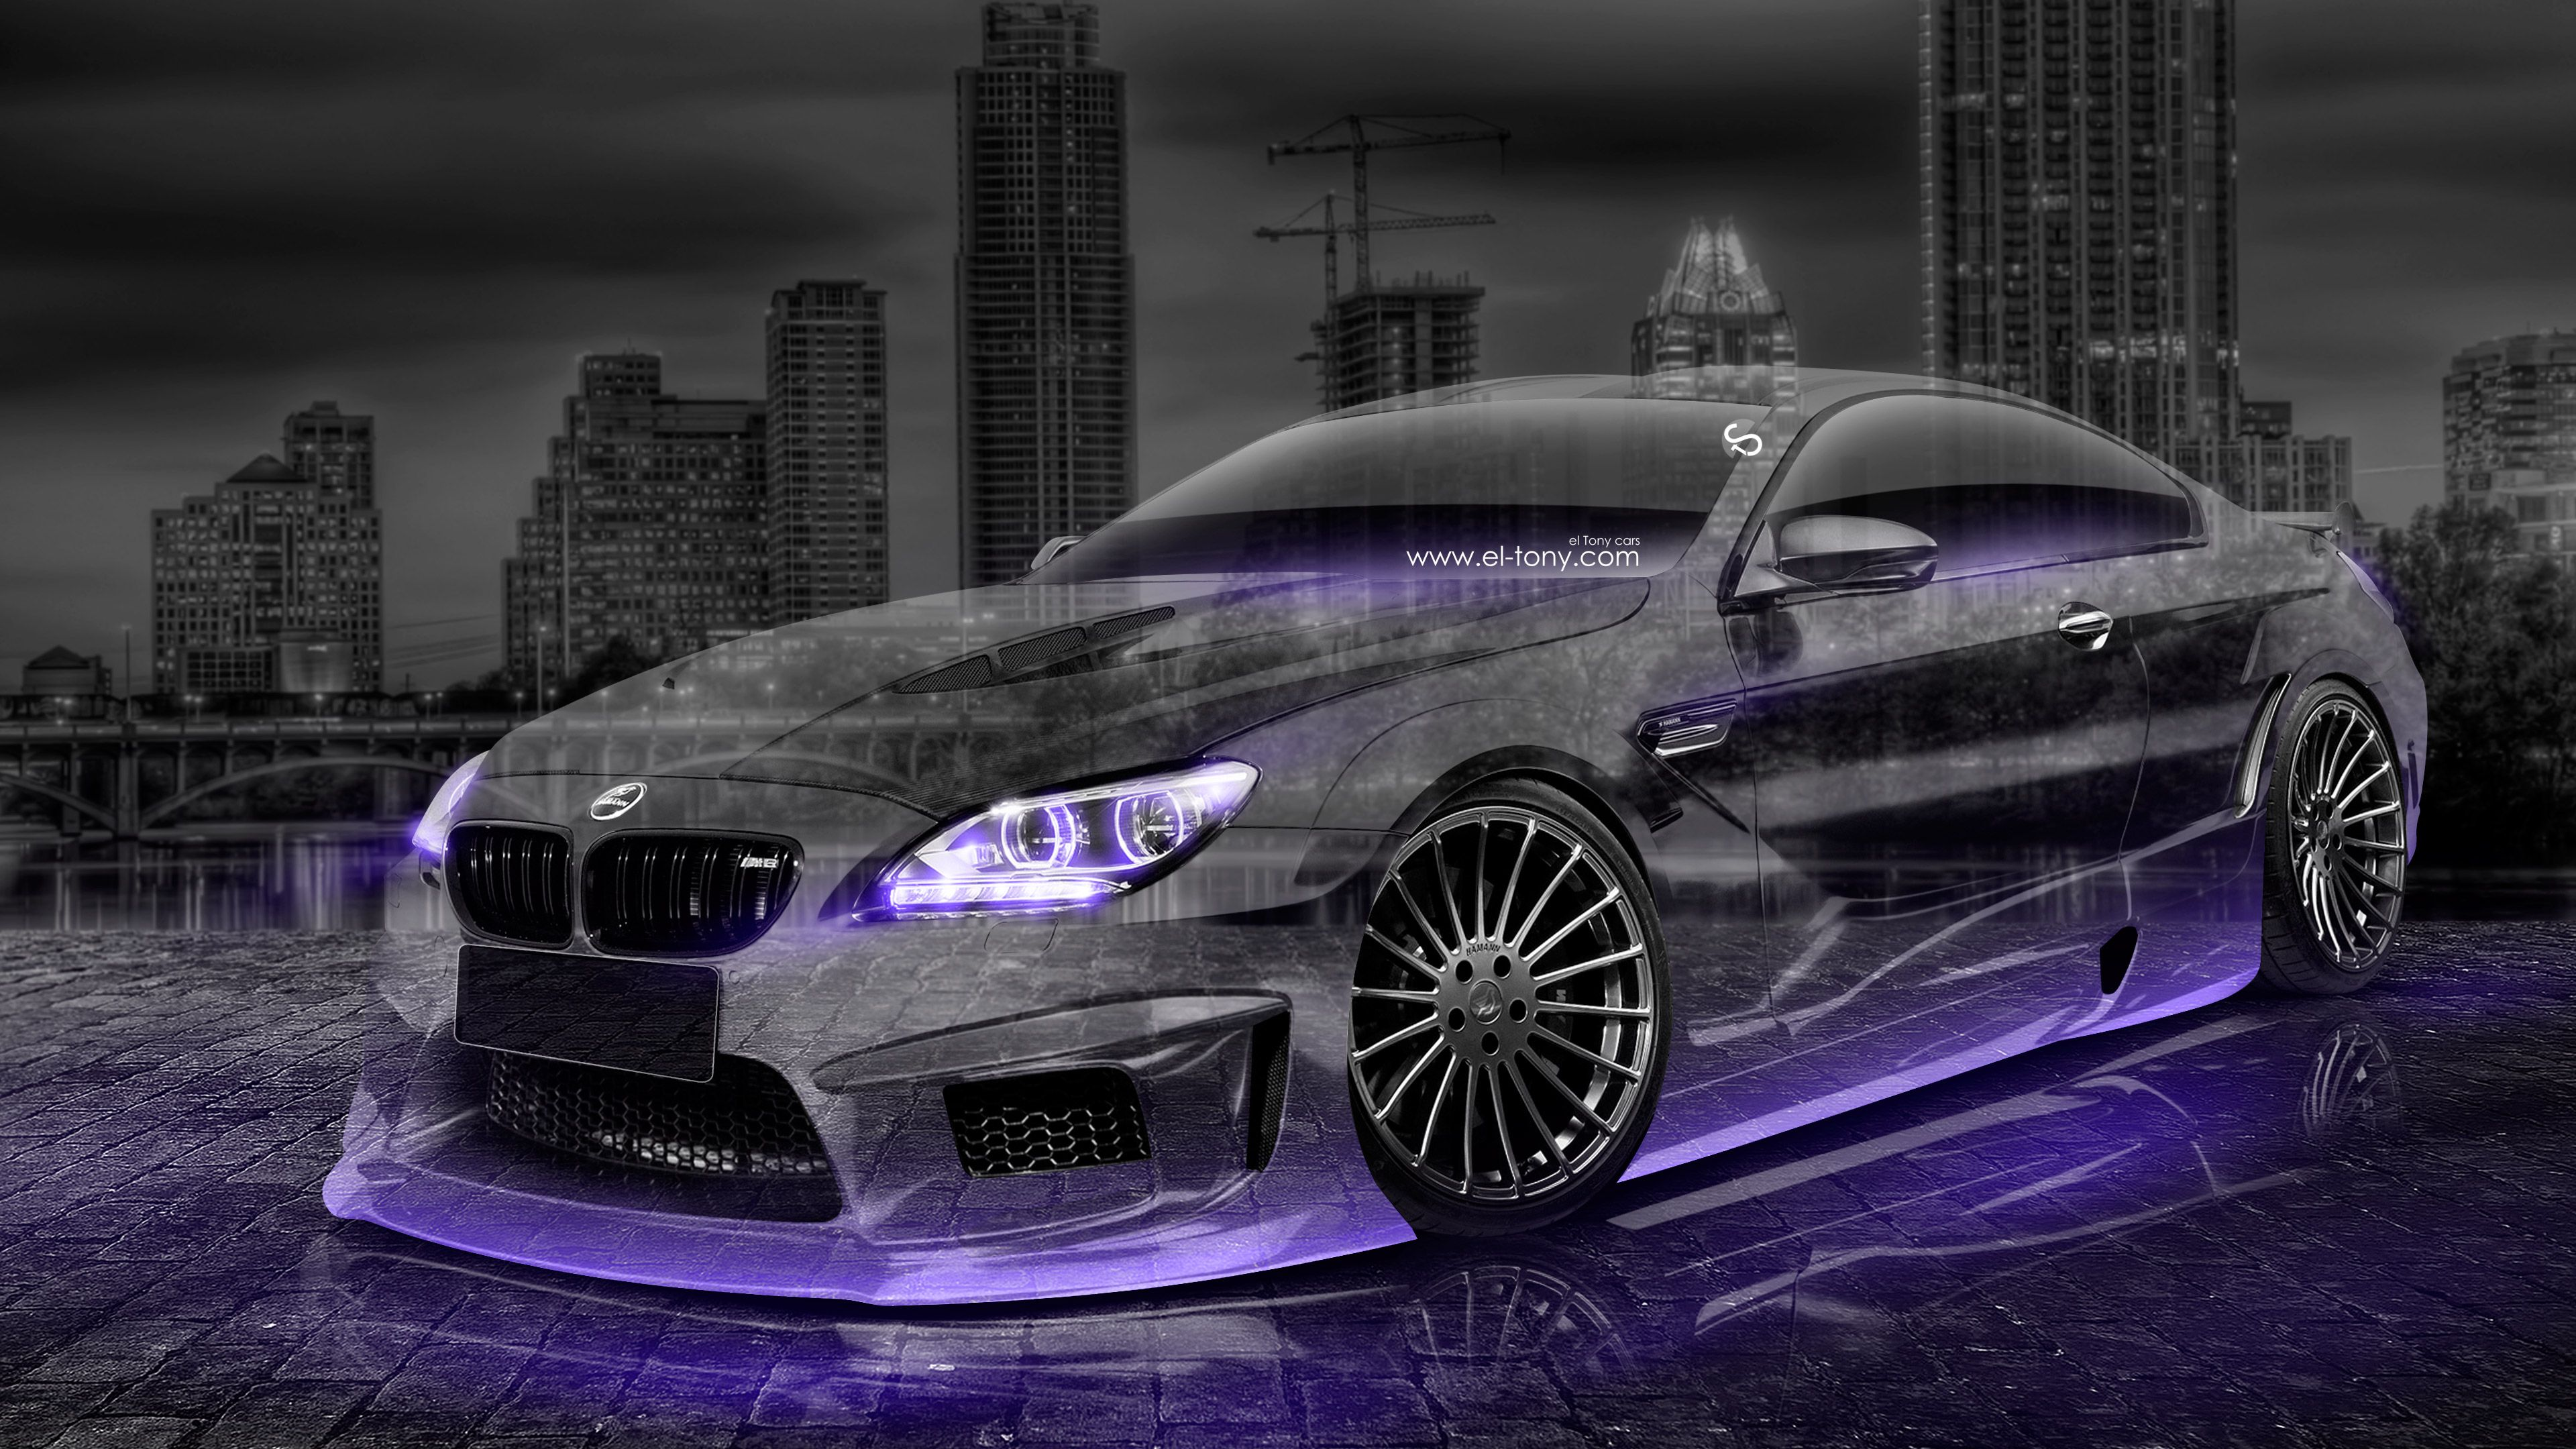 BMW M6 Hamann Tuning 3D Crystal City Car